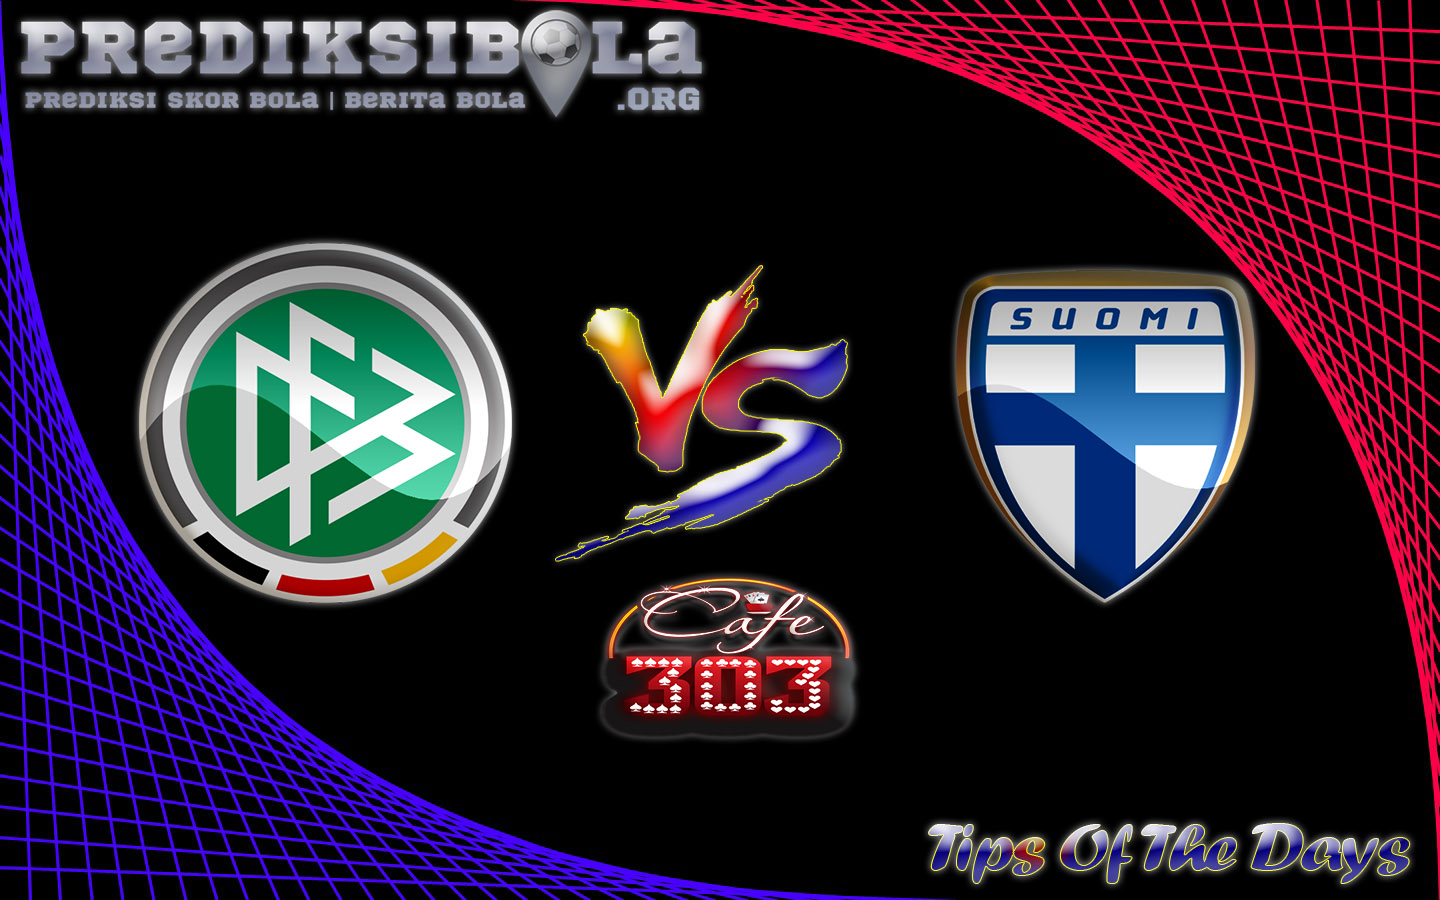 Prediksi Skor Jerman Vs Finlandia 1 September 2016